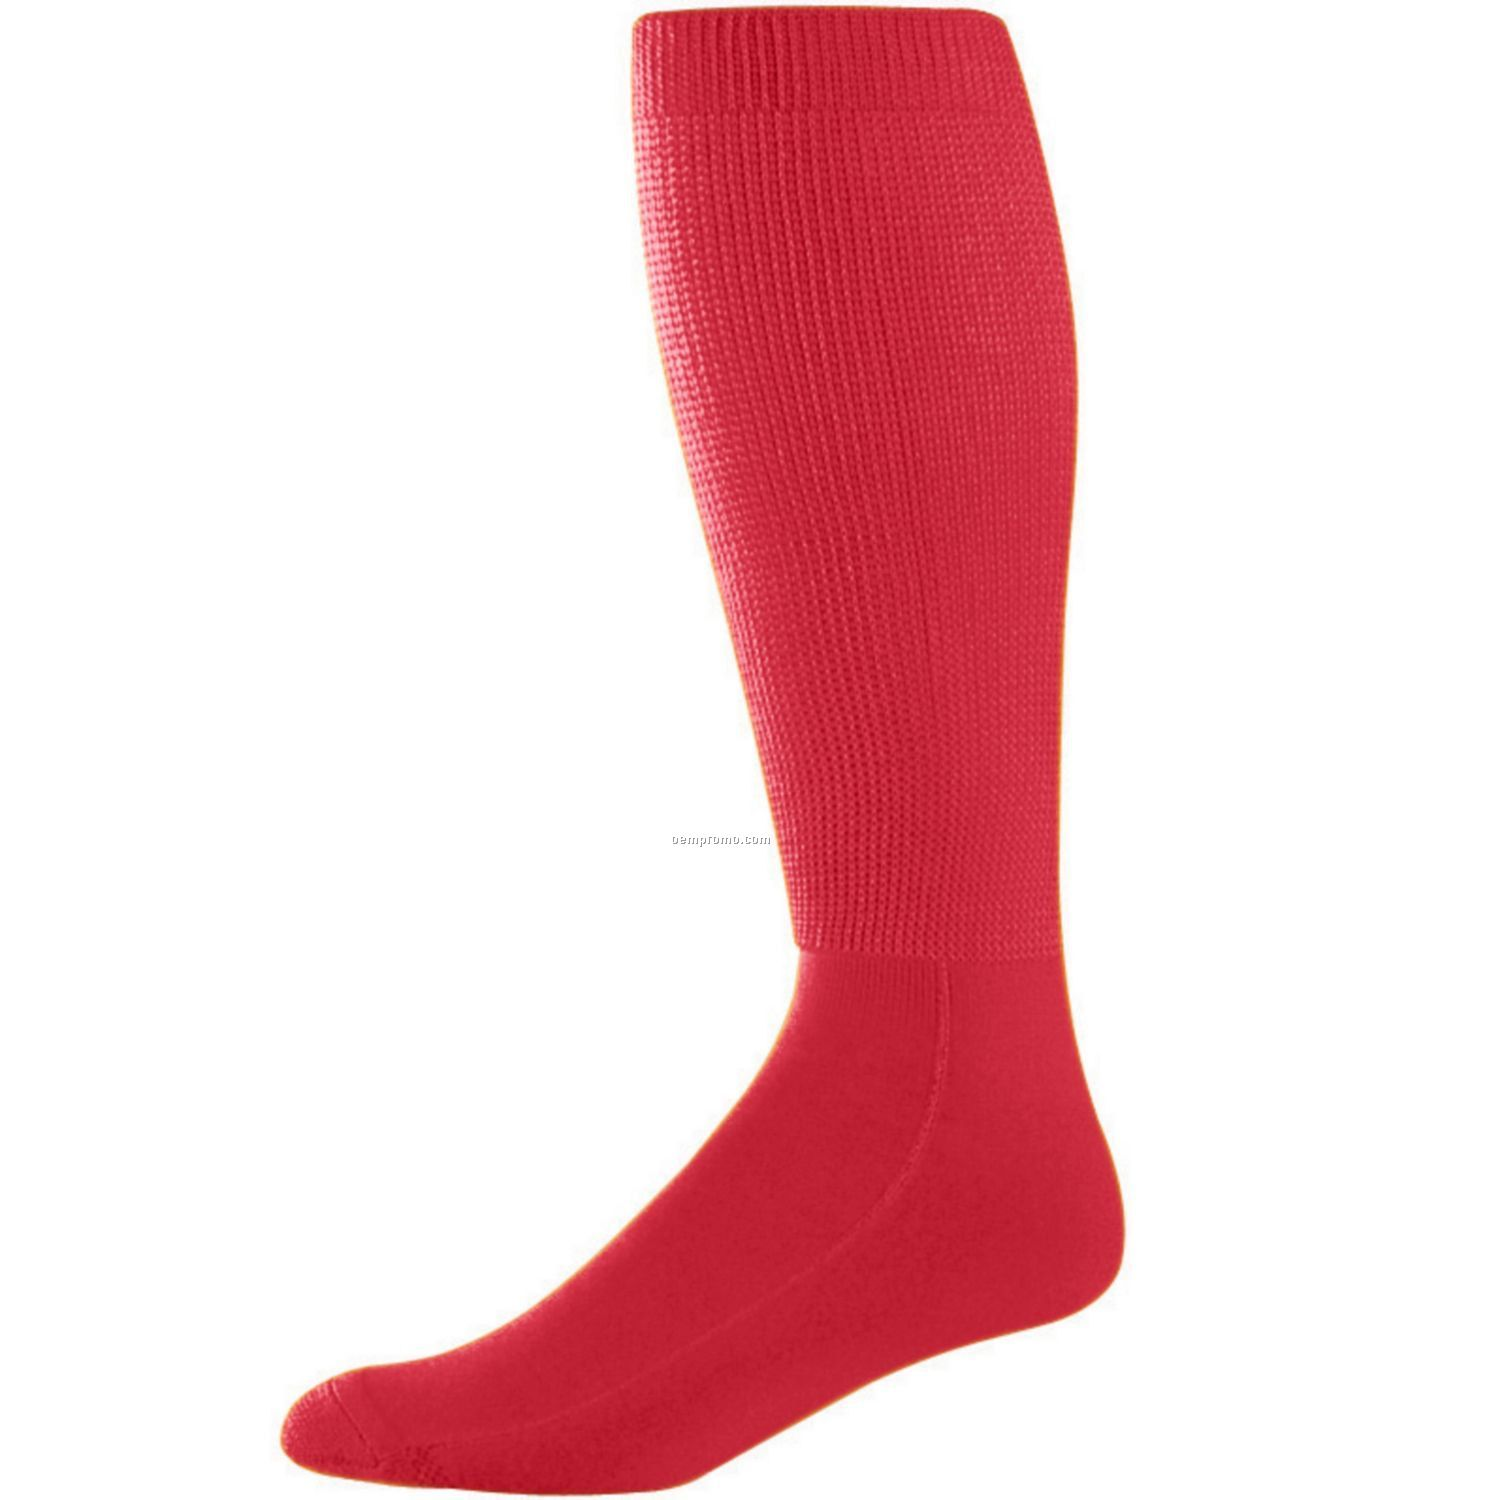 6087 Wicking Youth Athletic Soccer Socks